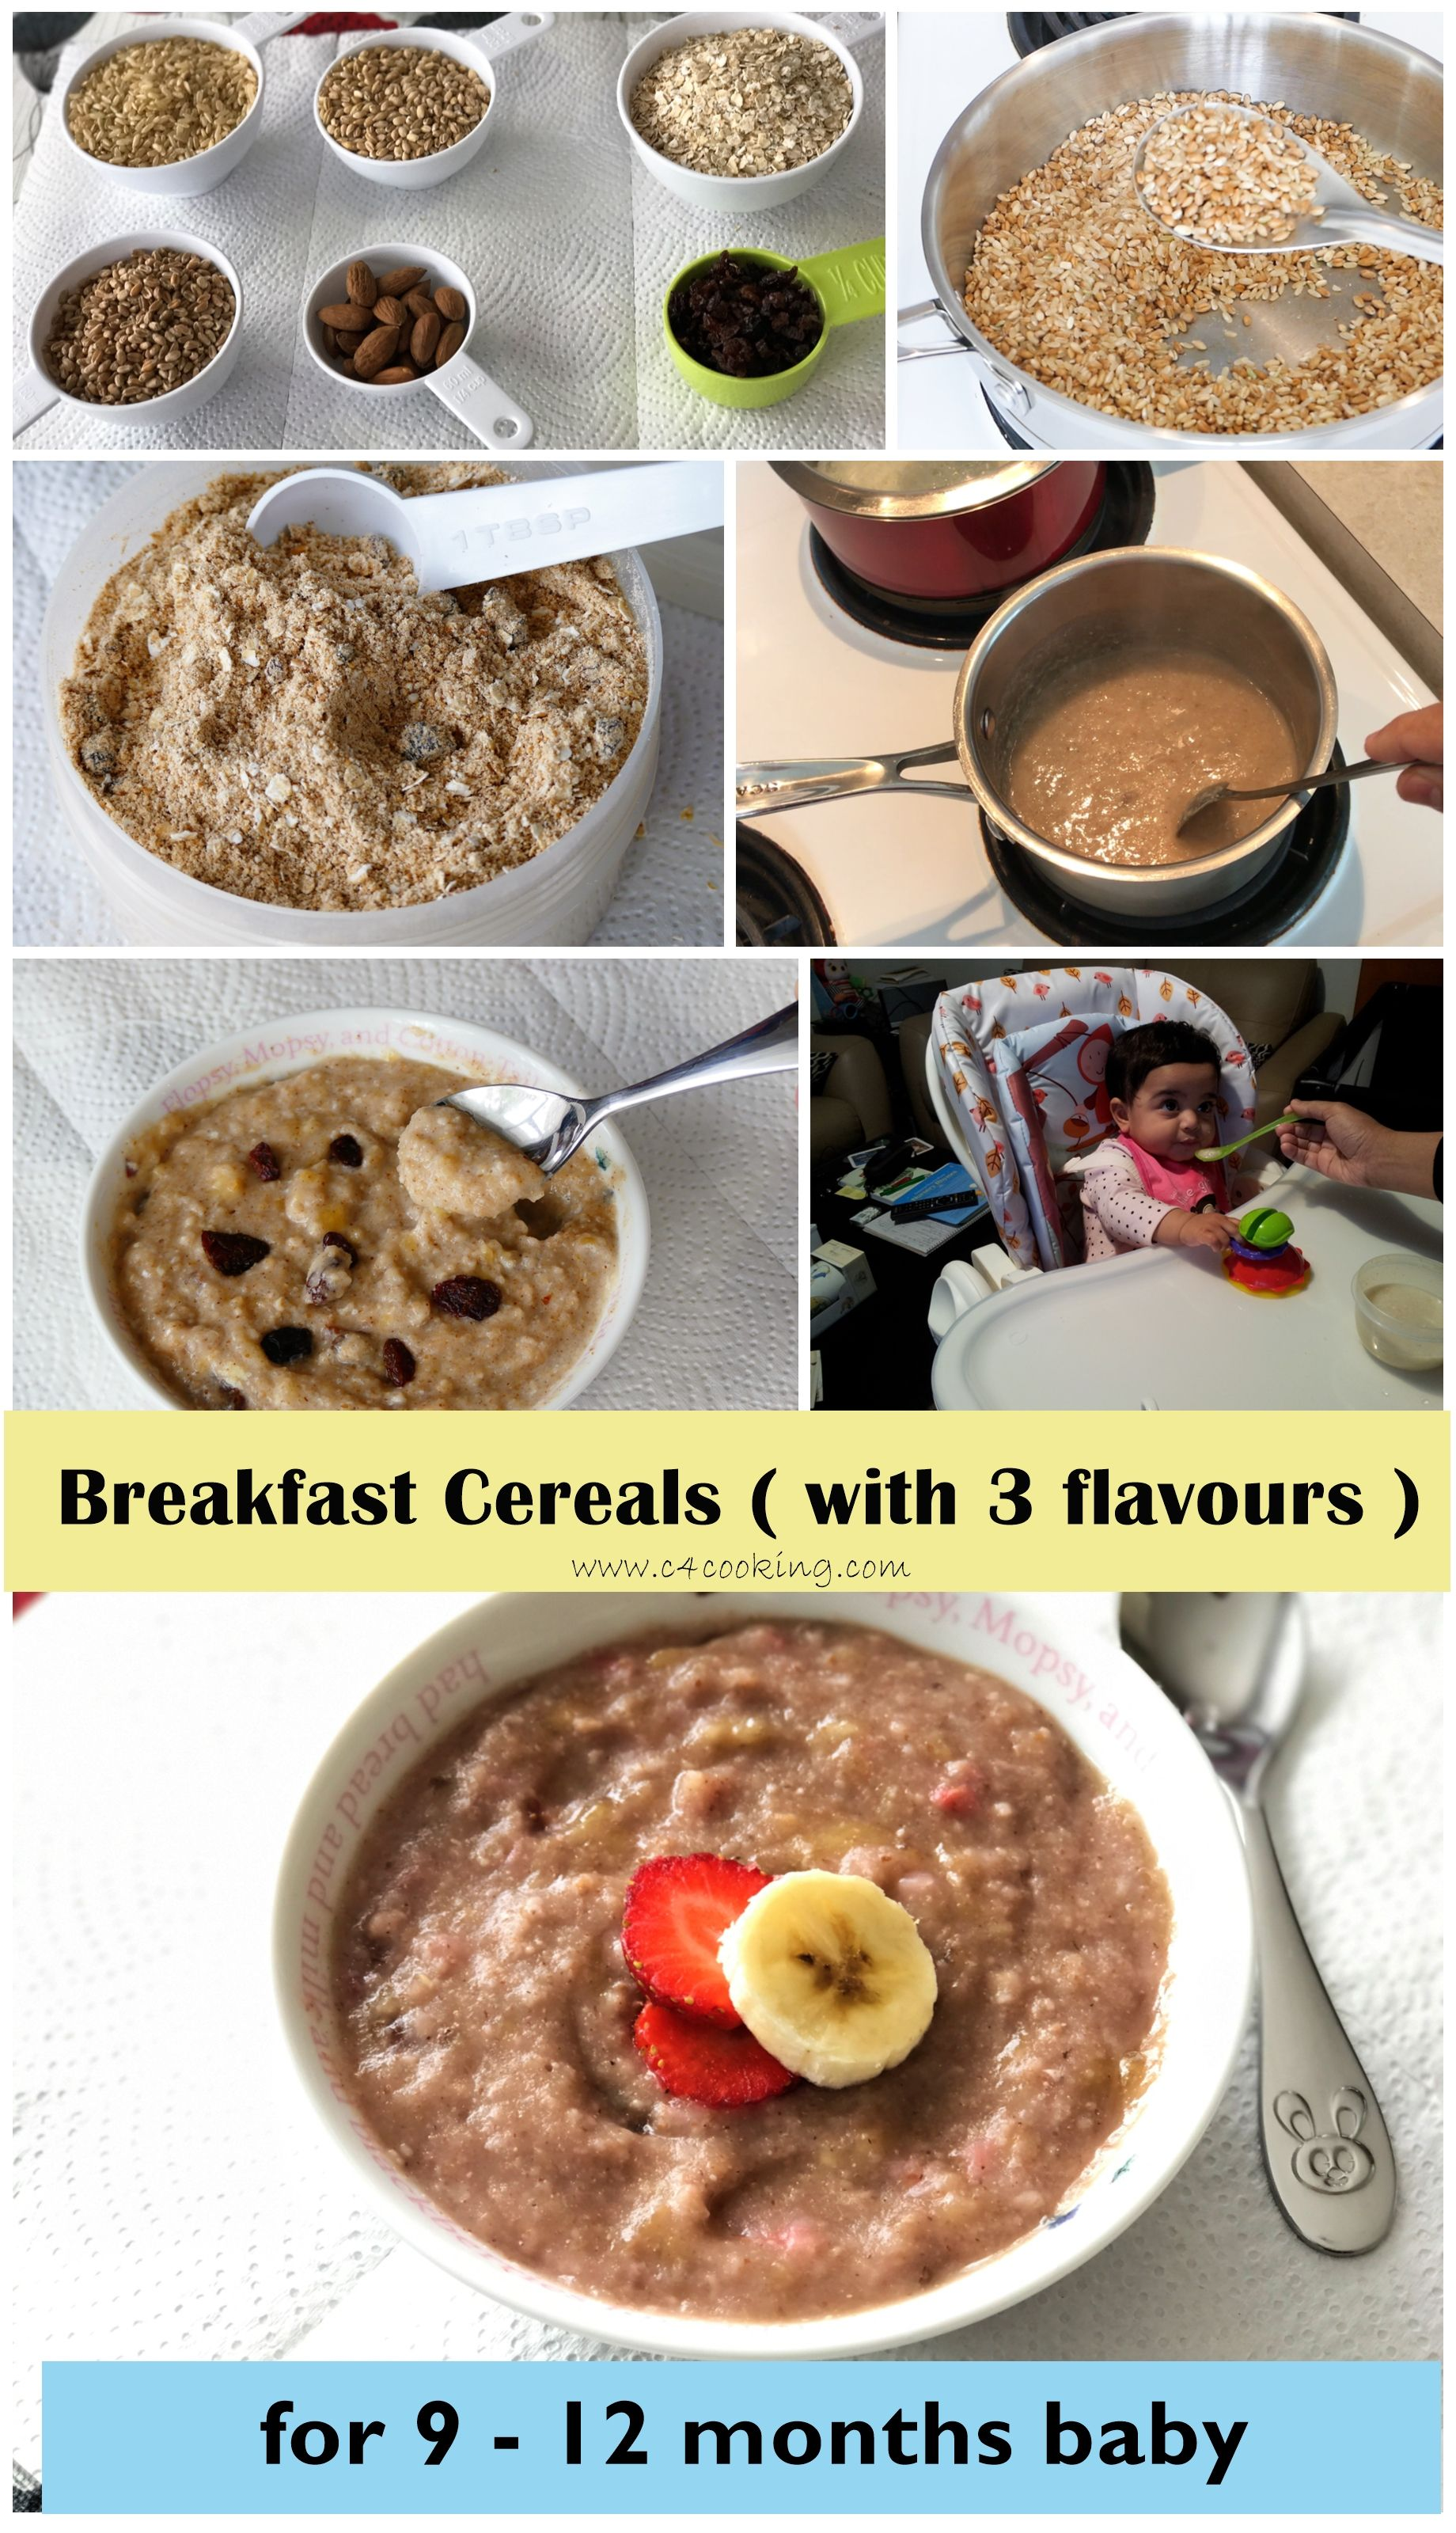 breakfast cereal for 9-12 months baby | kiddie meals | pinterest